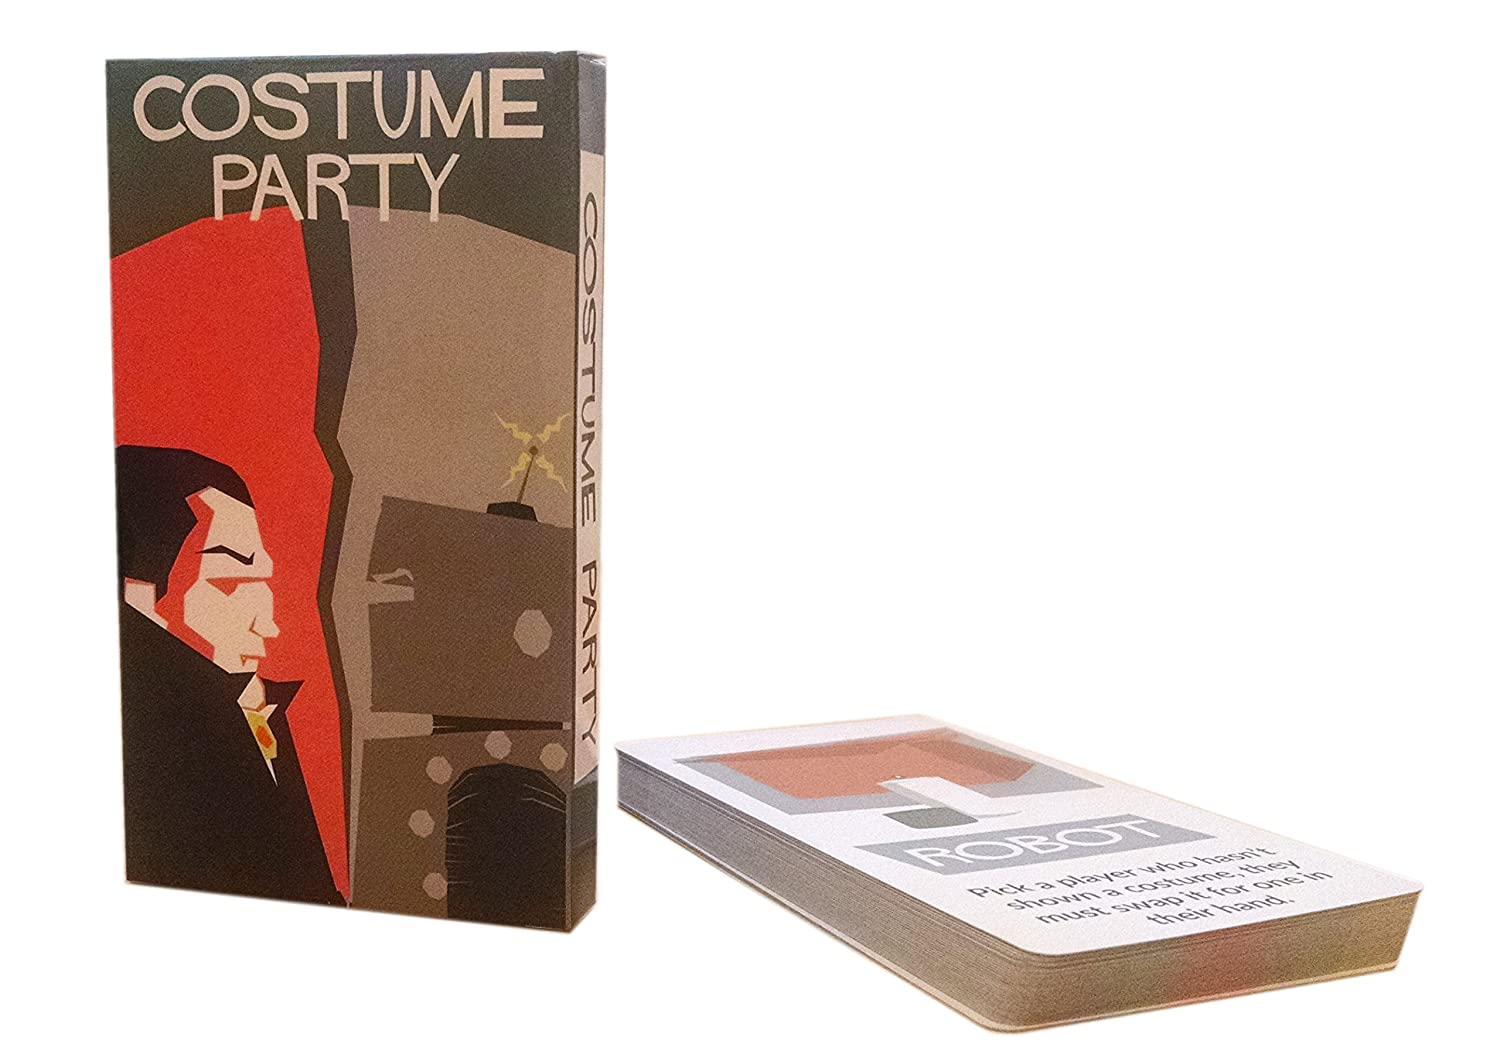 The Costume Party Naturalist Games E20589